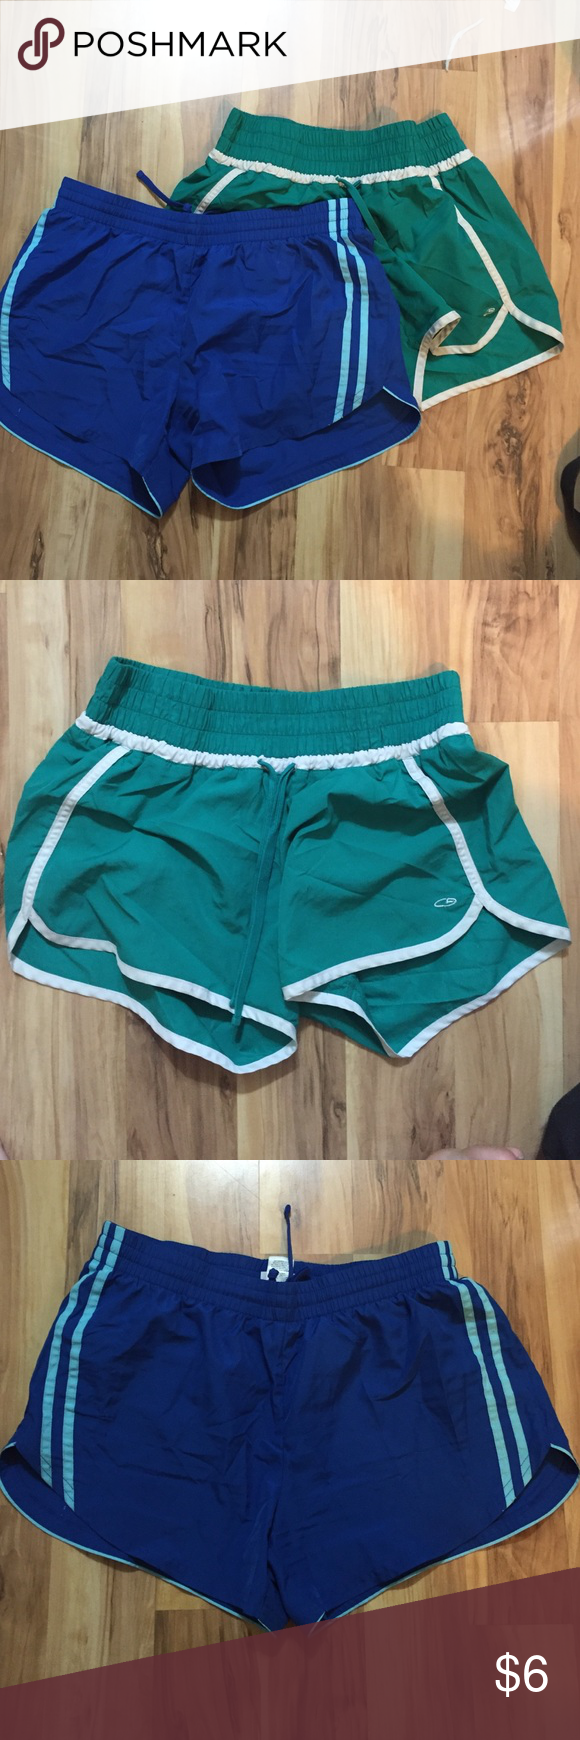 Two gym shorts! Summer sale! Selling two gym shorts! Like brand new, except the blue has a small paint stain shown on the last picture. Shorts